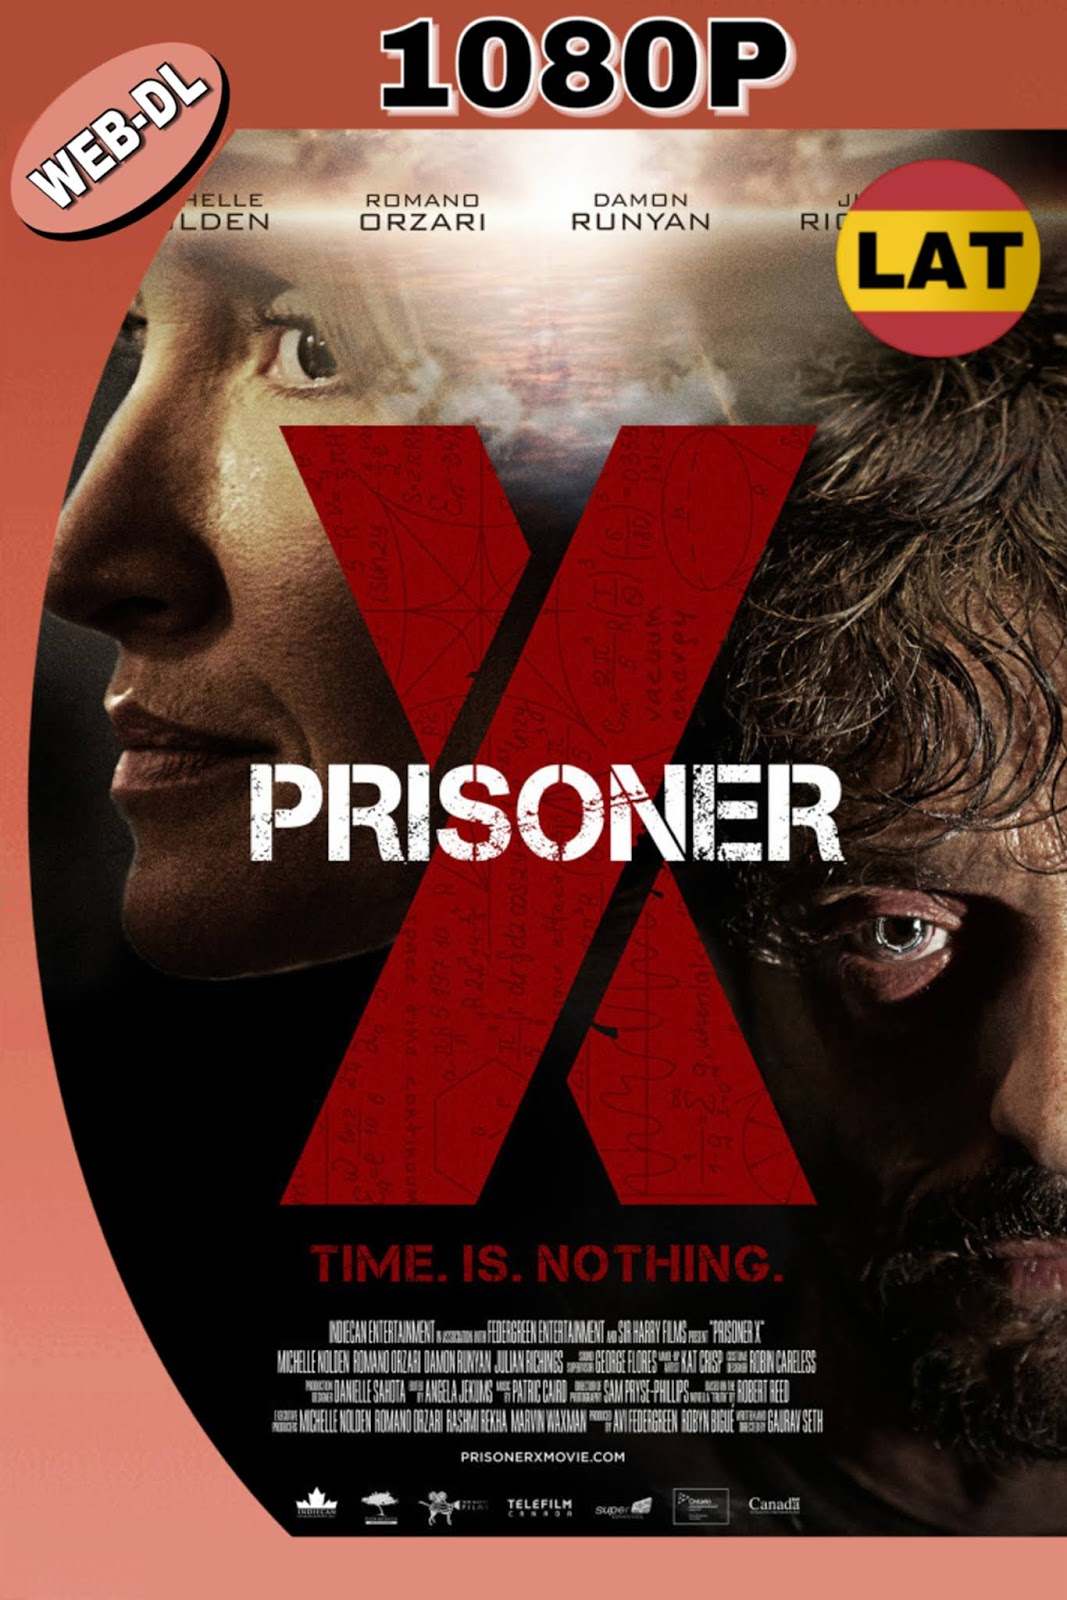 PRISONER X 2016 LAT-ING HD WEBDL 1080P 3GB.mkv